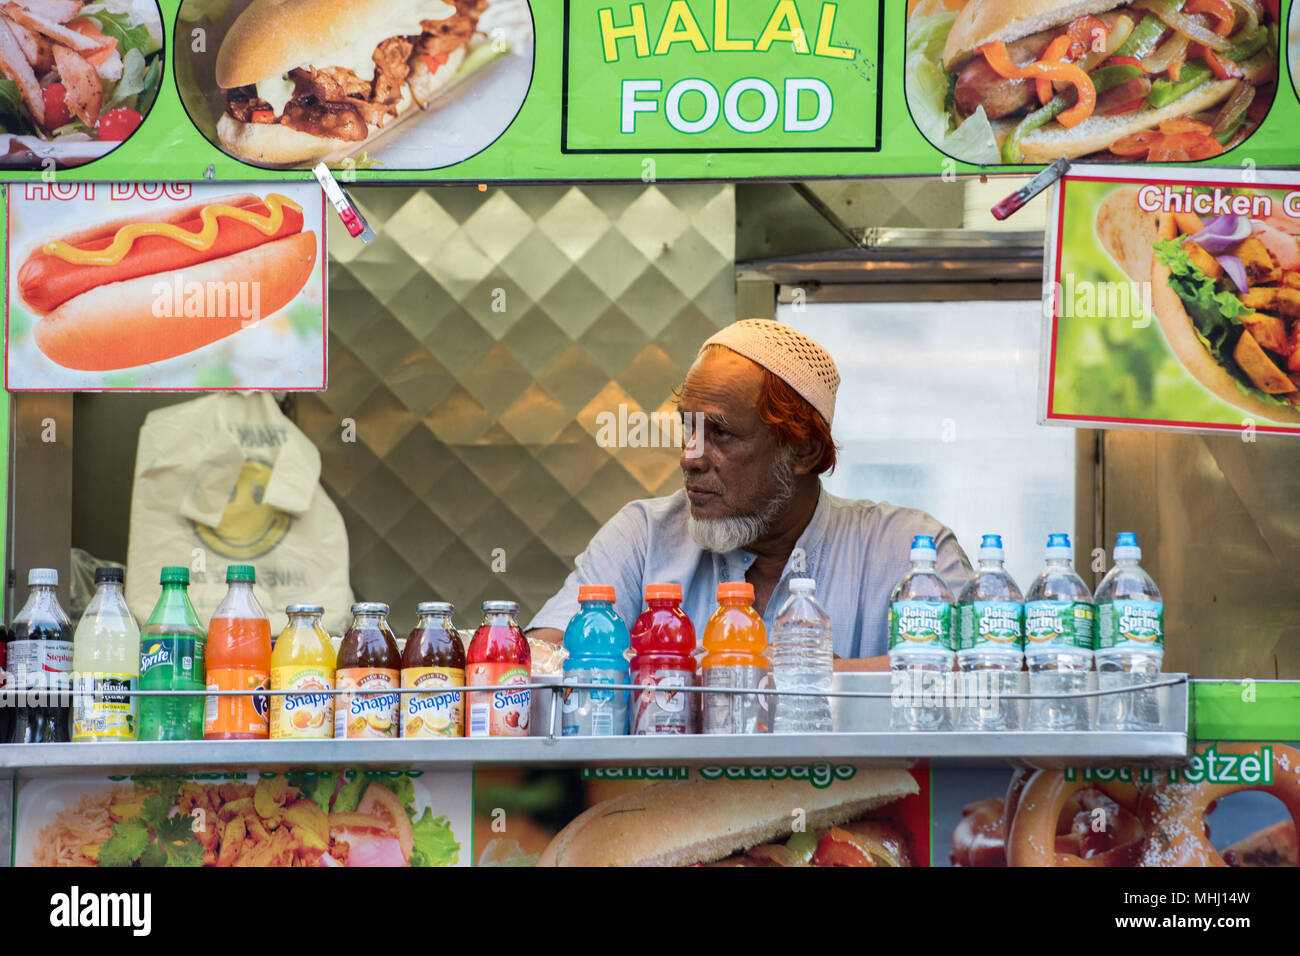 NEW YORK - USA - 13 JUNE 2015 - Arabic man while selling